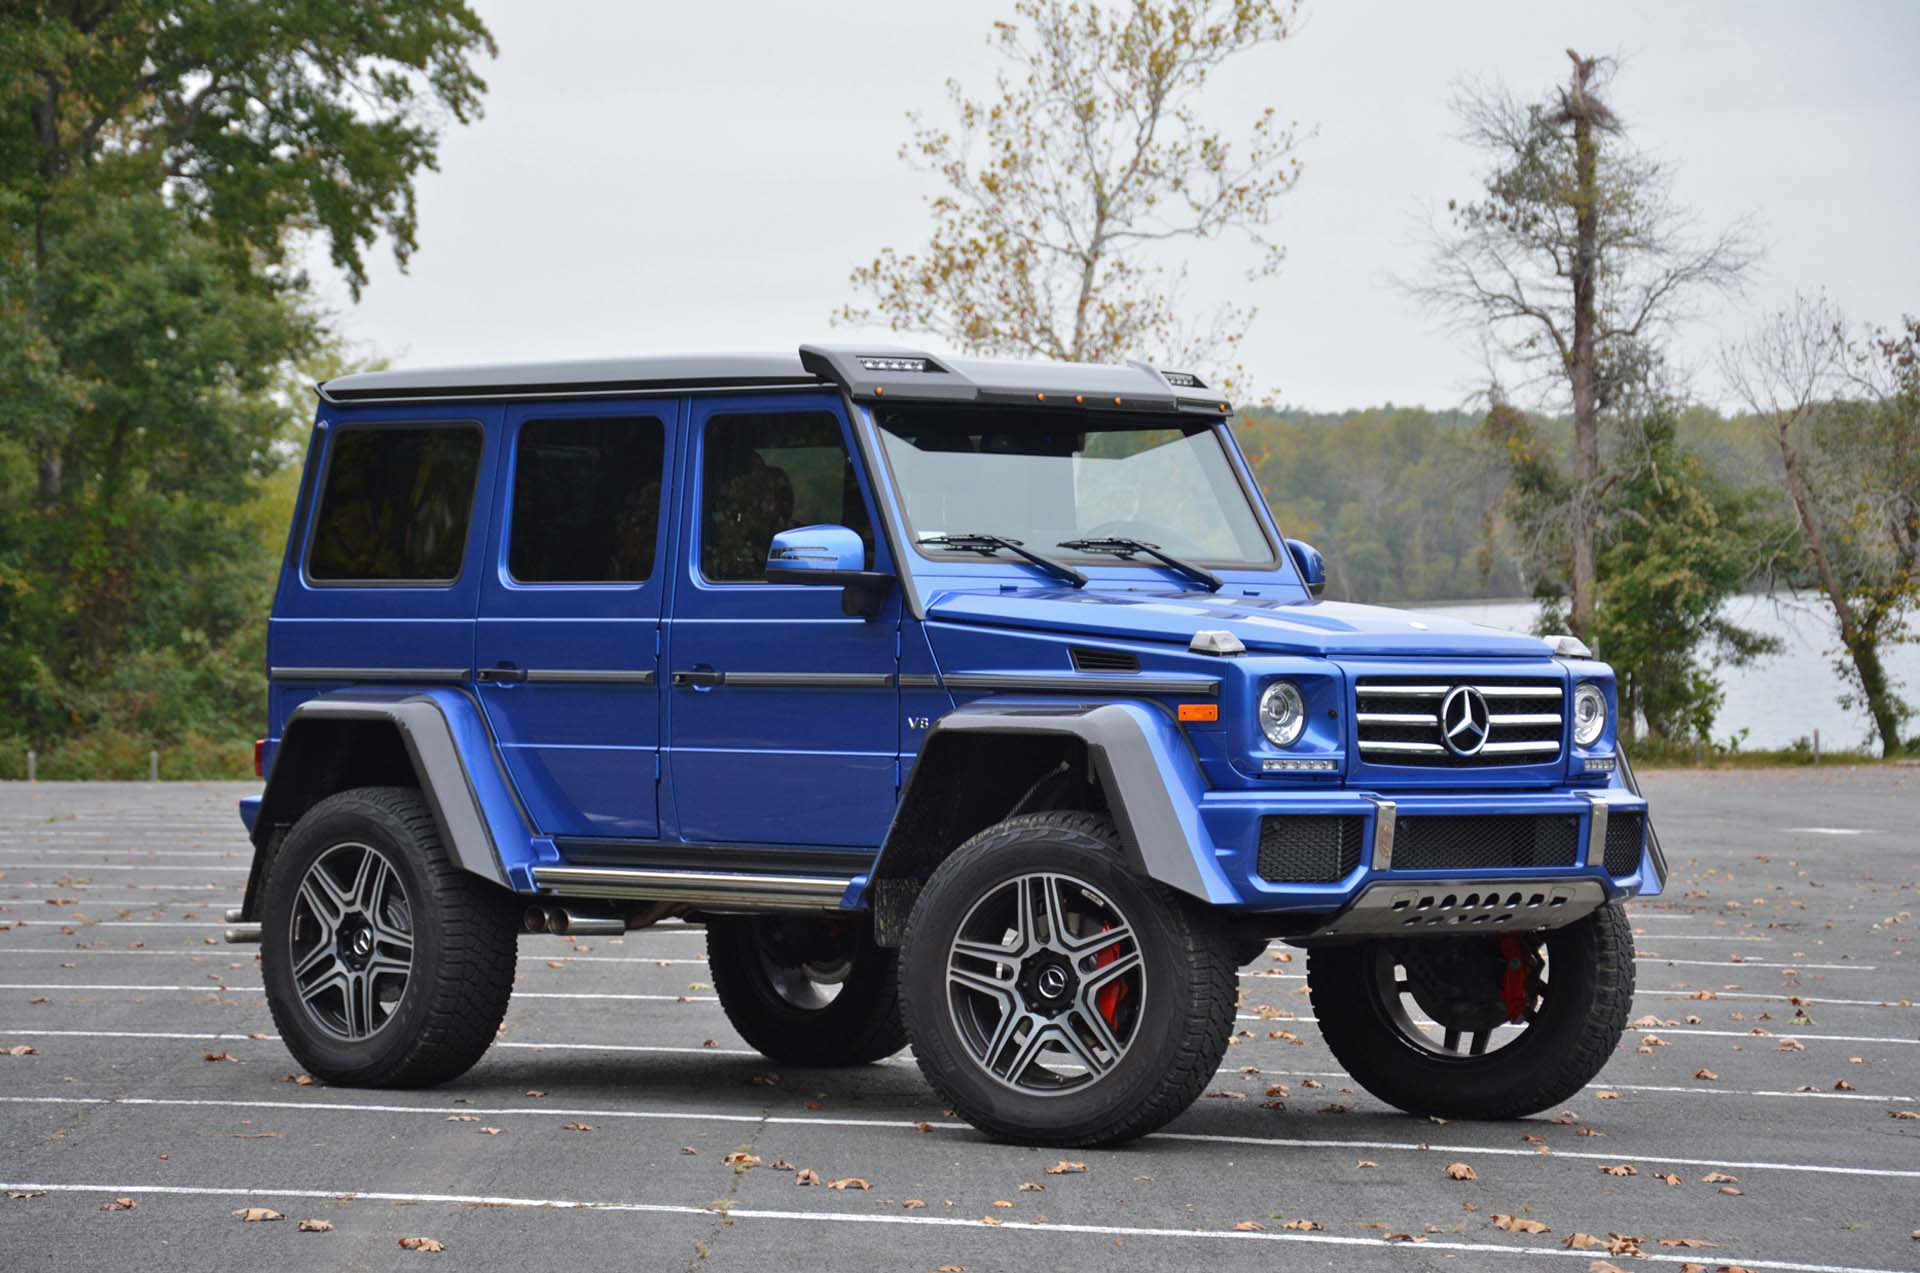 Mercedes benz g550 4x4 squared review top tax bracket bruiser for Mercedes benz 4x4 g class